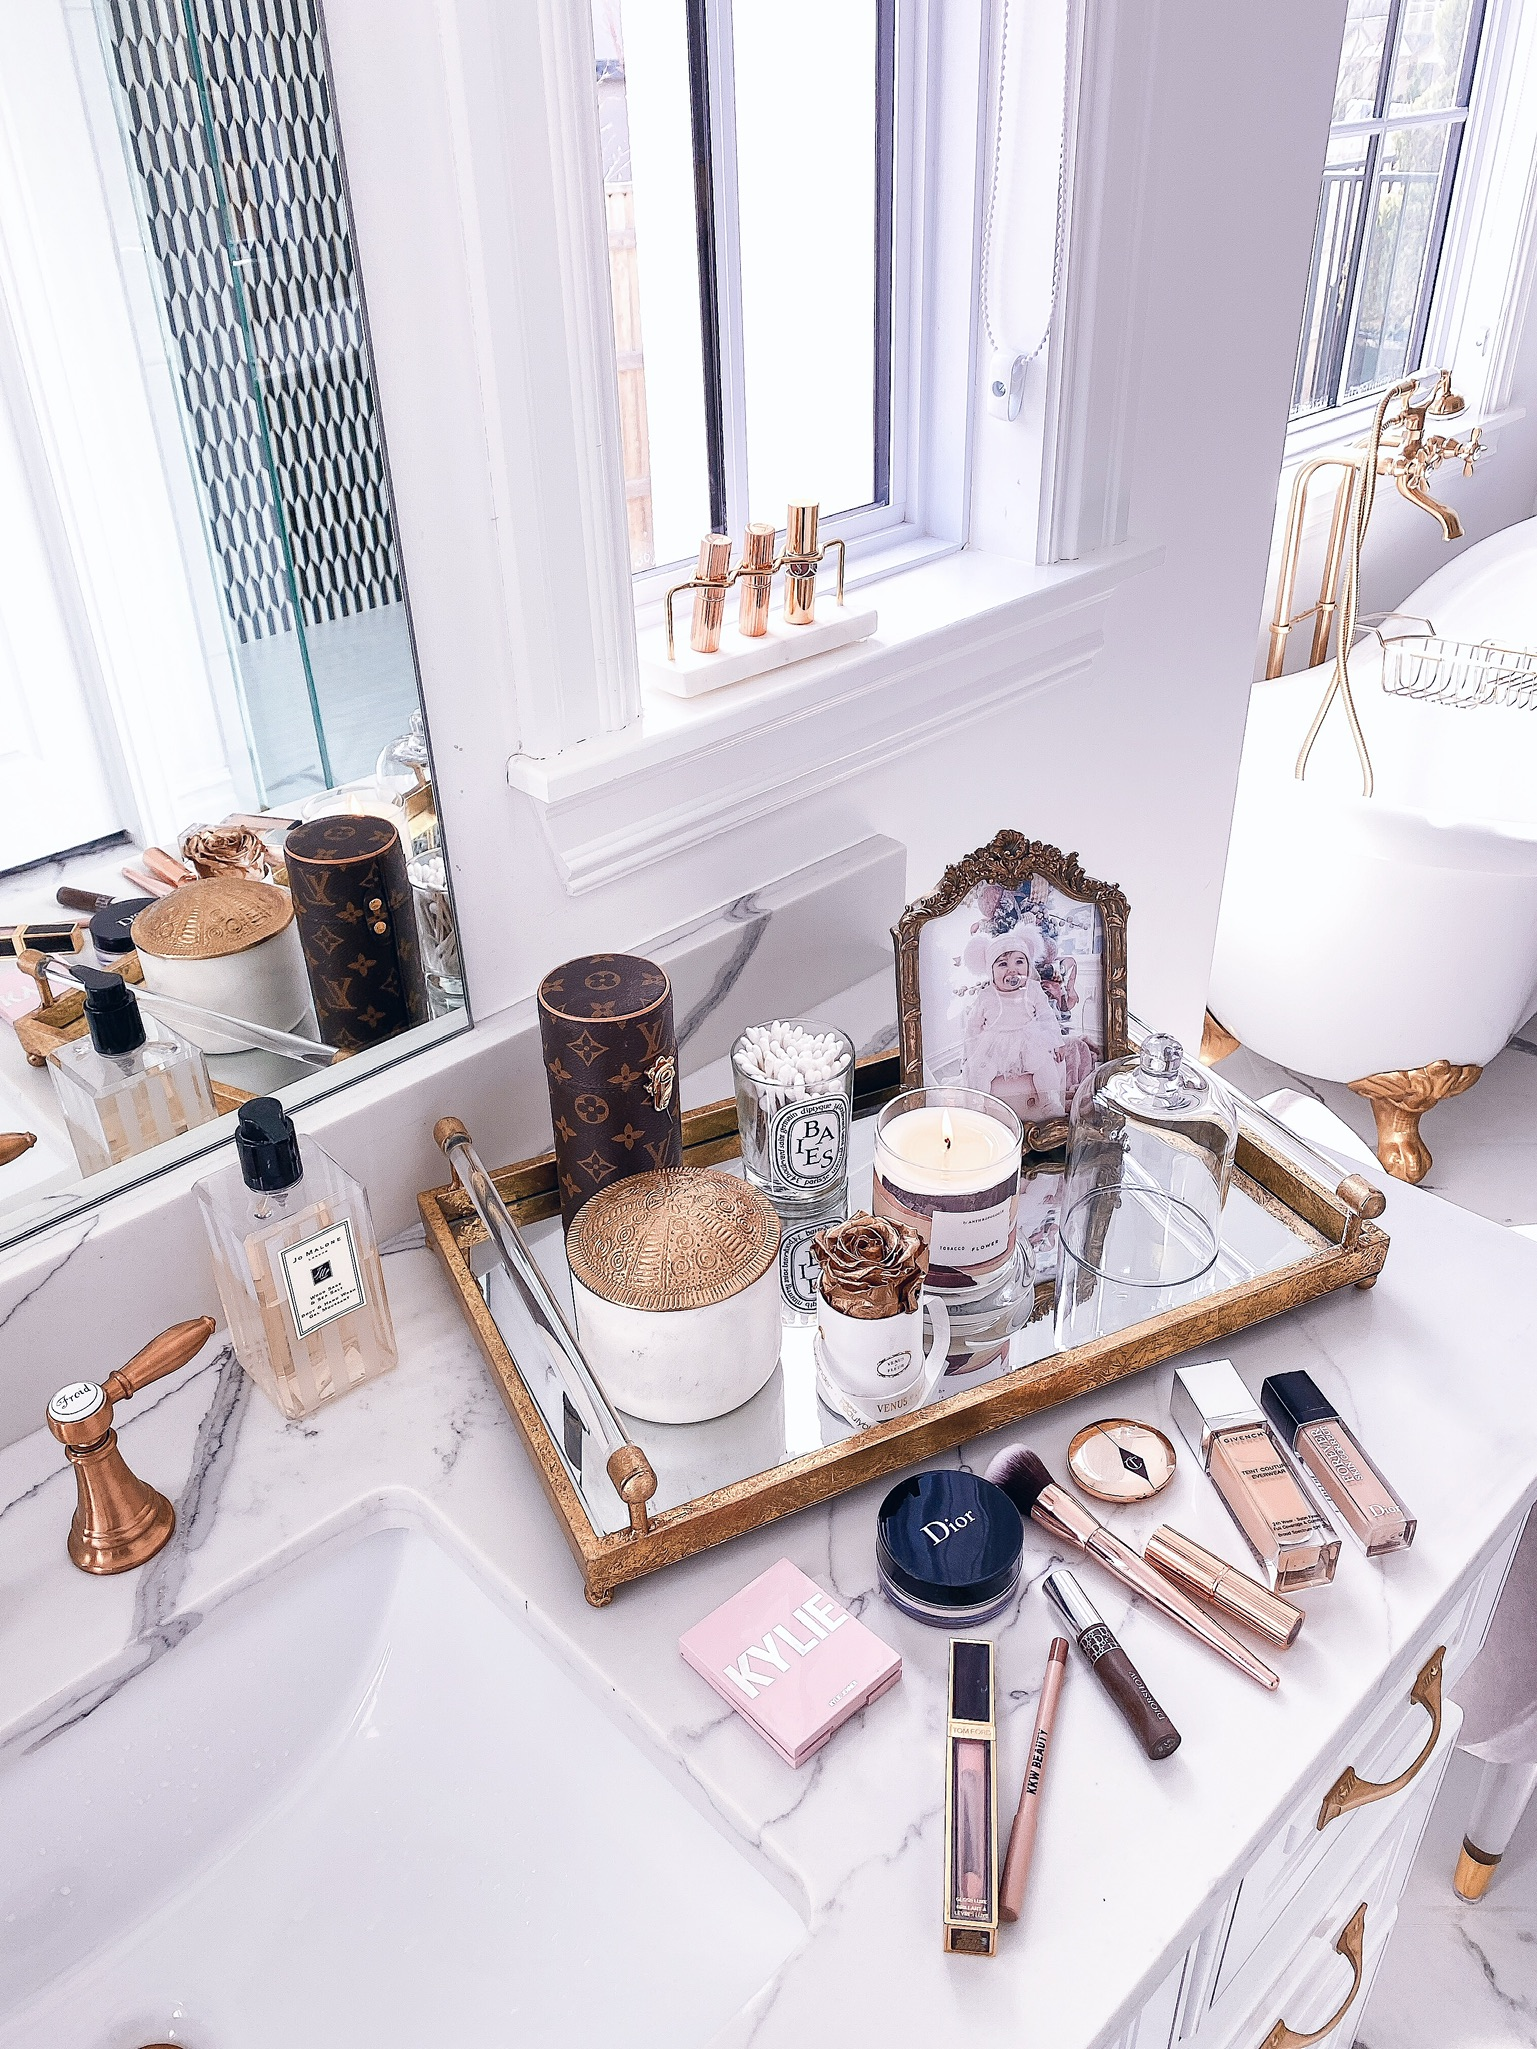 Instagram Recap by popular US lifestyle blog, The Sweetest Thing: image of a Anthropologie Victoria Frame, Anthropologie Huntington Marble Canister, Anthropologie Coraline Vanity Mirror, Anthropologie Marble Vanity Organizer, Overstock Carter Antiqued Gold Decorative Trays, Anthropologie Cloche Candle, and Nordstrom Peony & Blush Suede Body & Hand Wash JO MALONE LONDON.